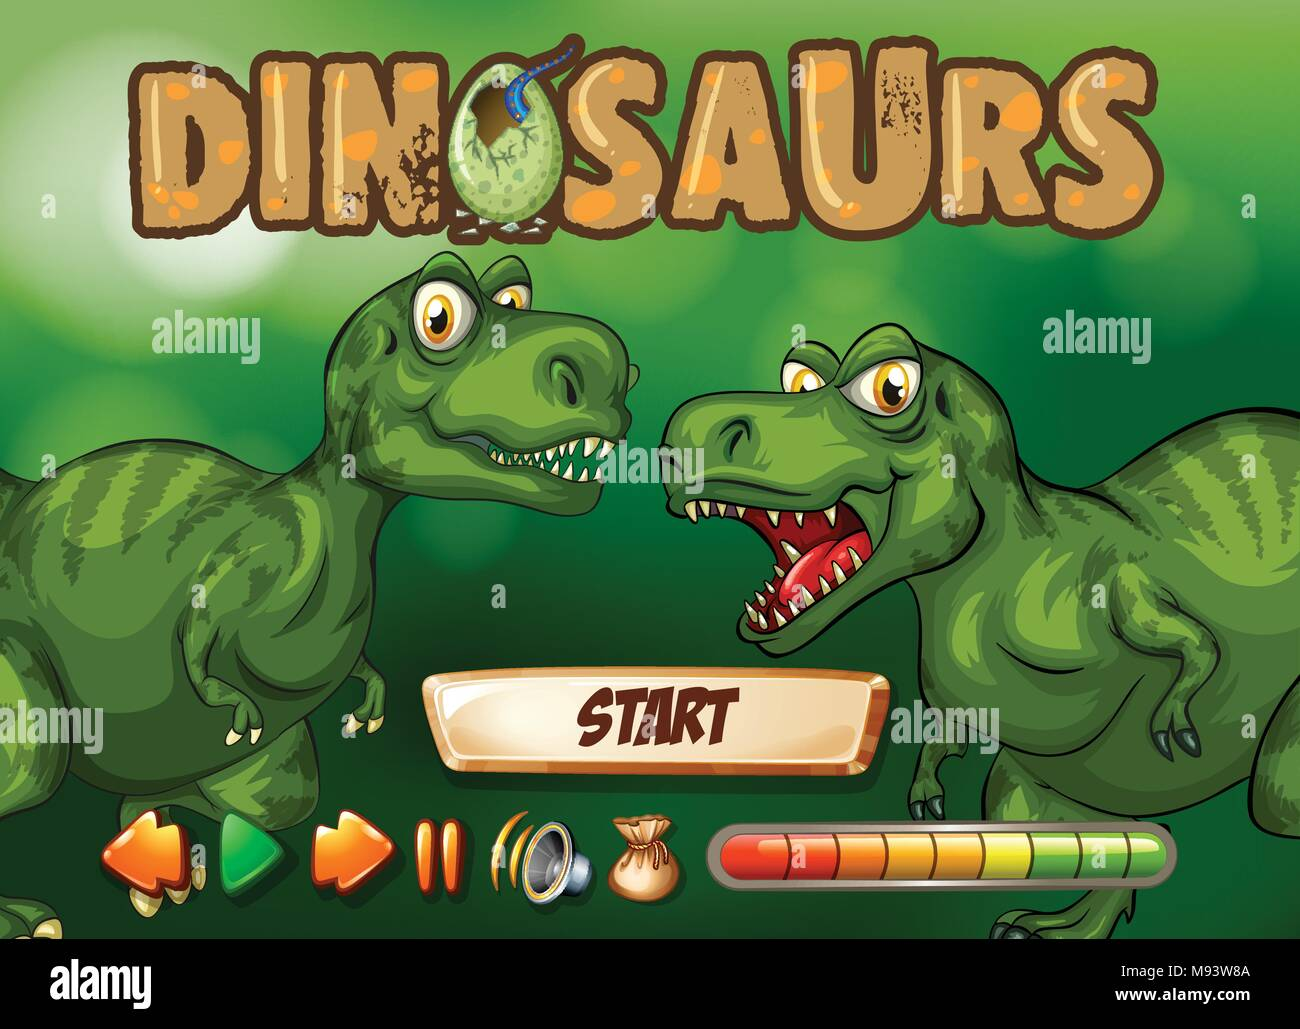 game template with t rex in background illustration stock vector art